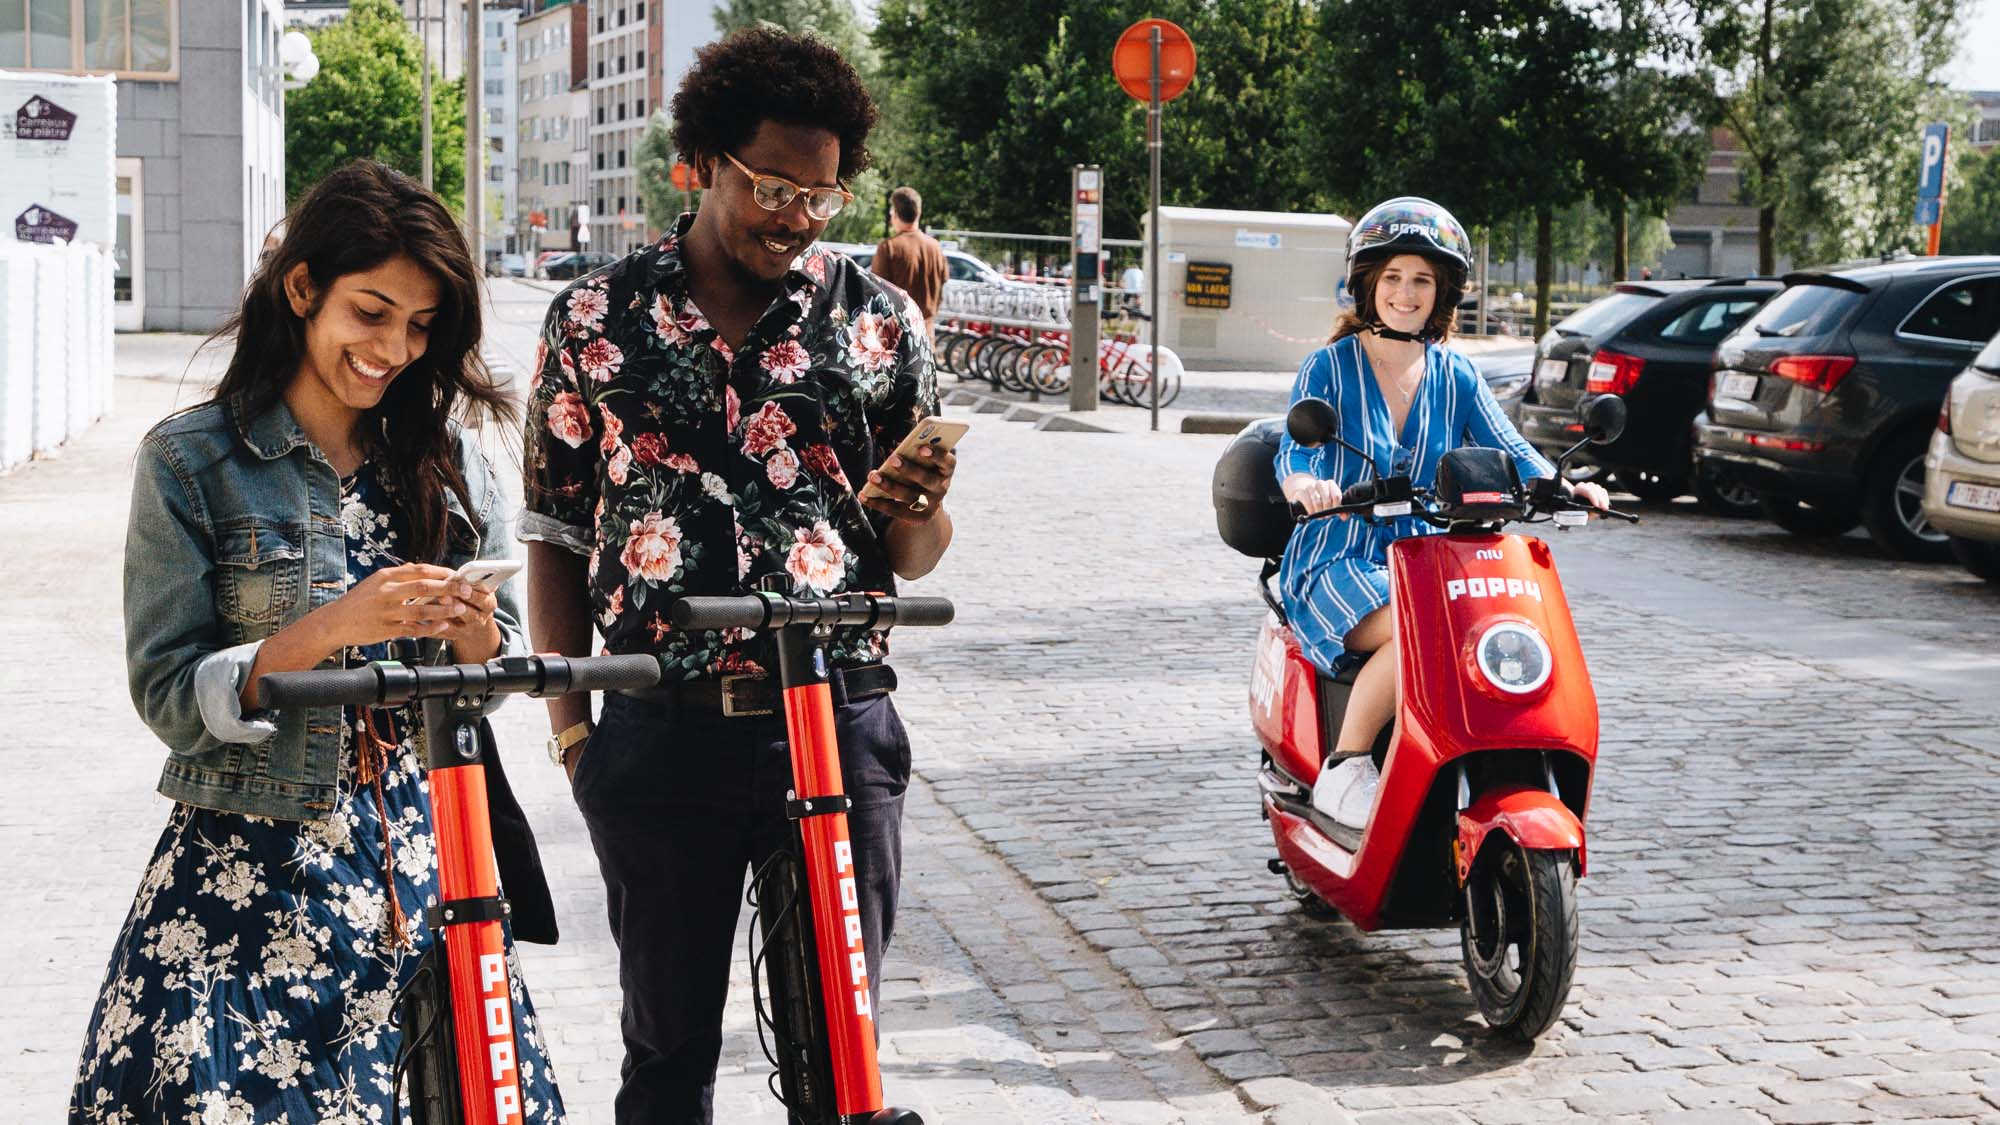 Poppy Mobility Launches Scootersharing Fleet